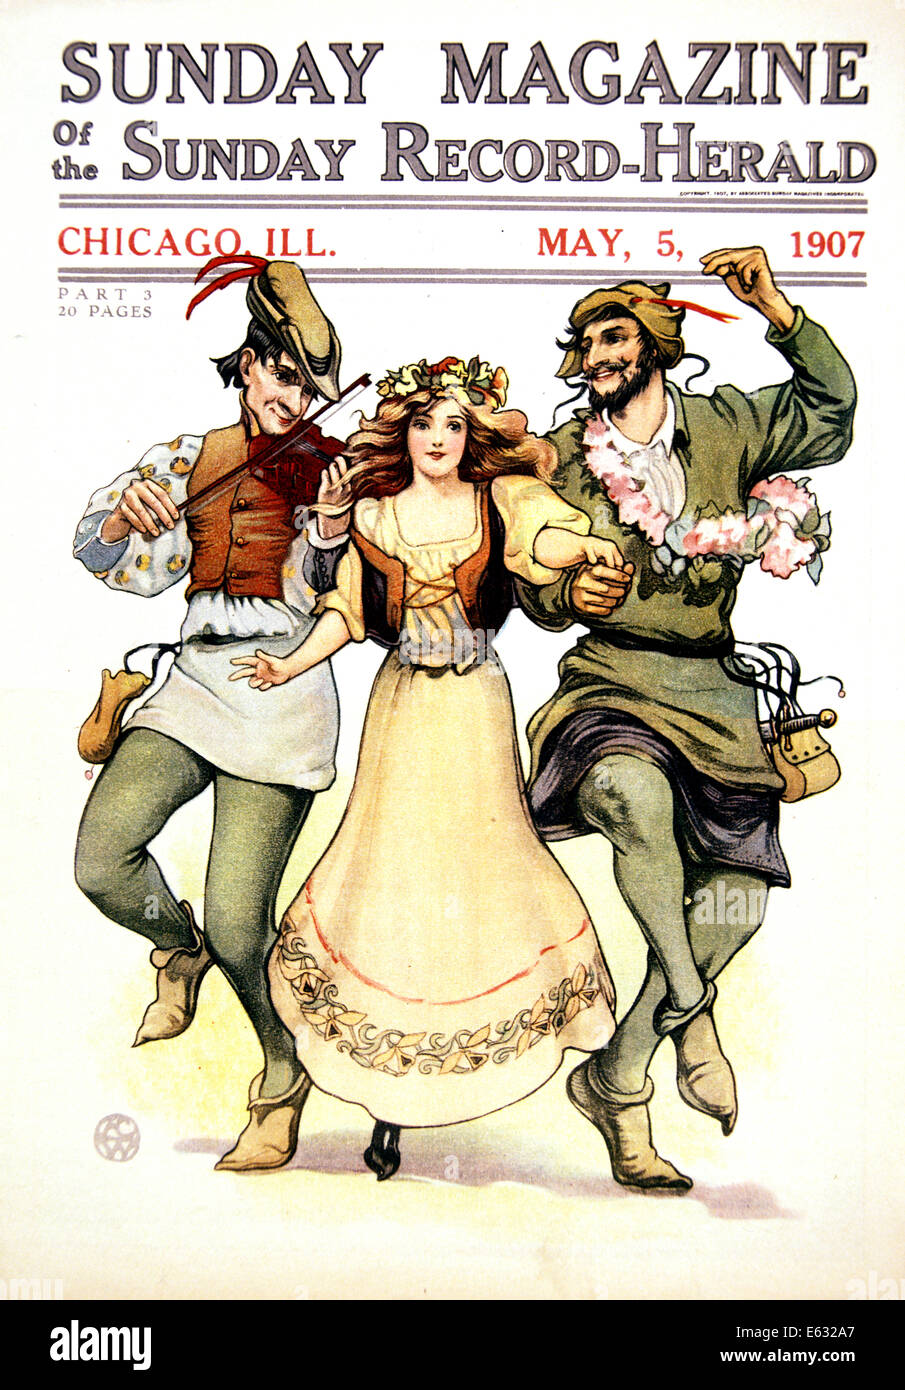 ILLUSTRATION OF MEDIEVAL MAY DAY FOLK DANCERS WOMAN TWO MEN FROM MAY 1907 CHICAGO SUNDAY MAGAZINE - Stock Image